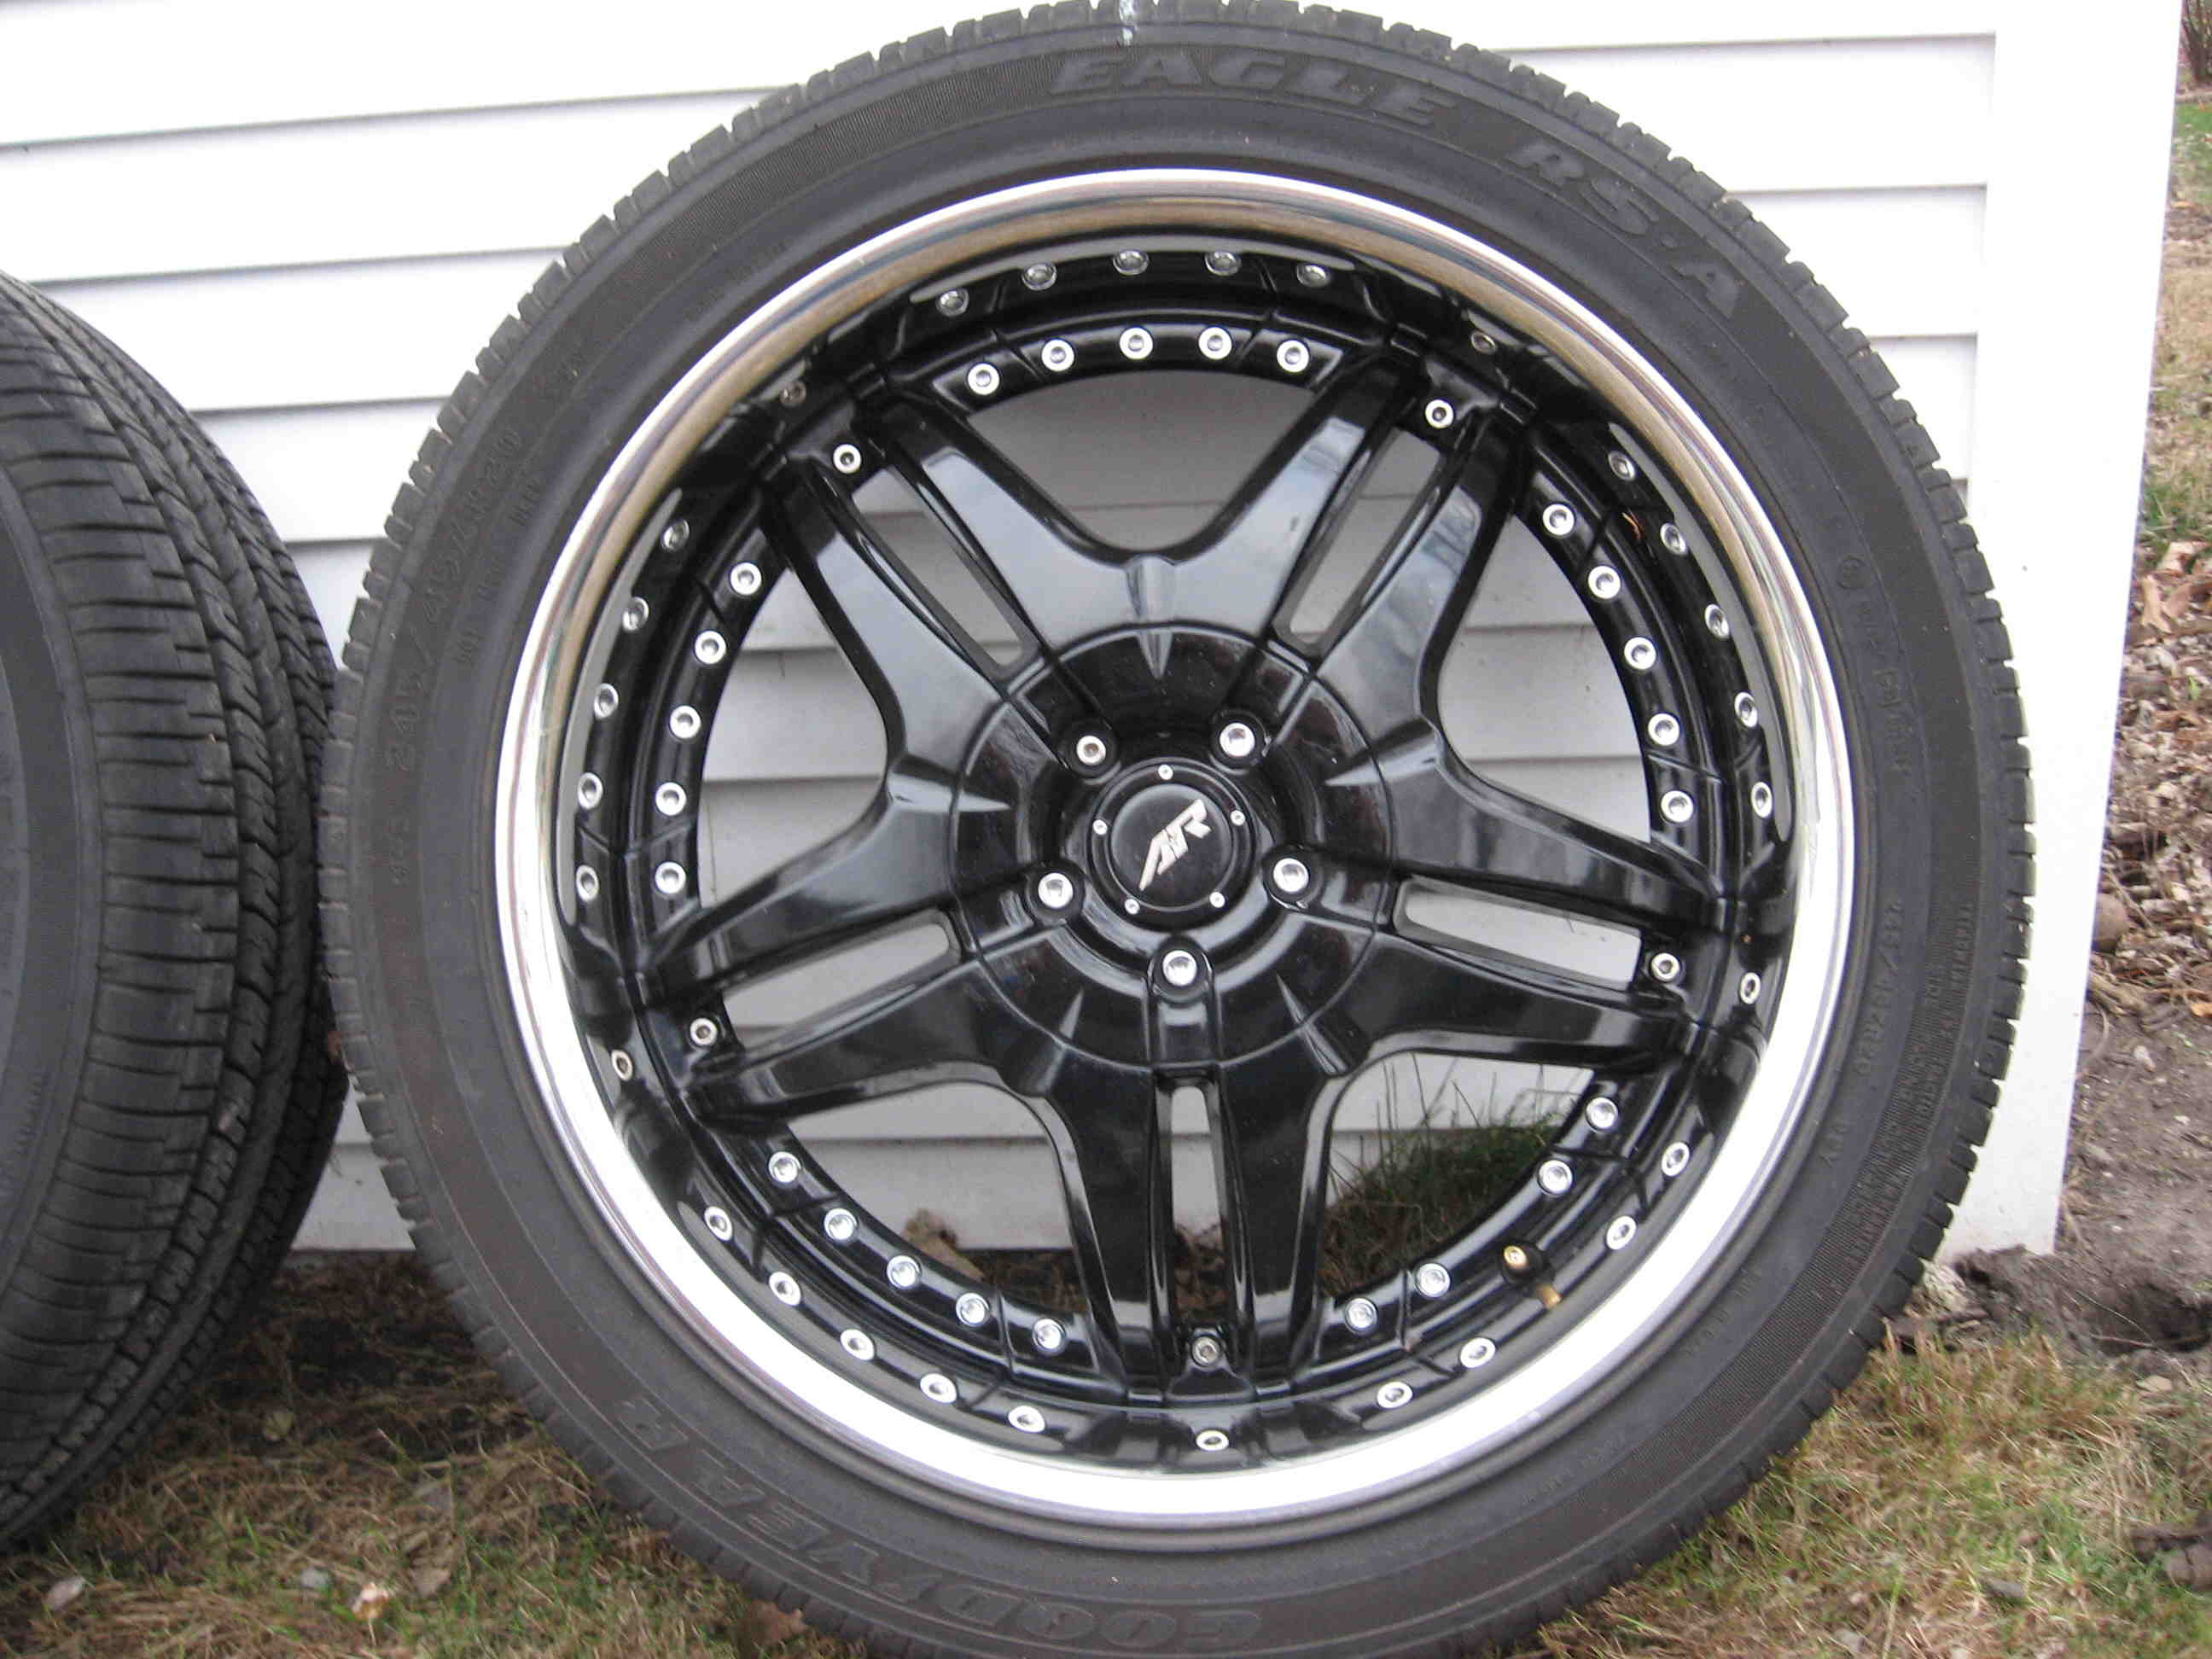 16 inch wheels wholesale custom wheels tires chrome rims autos post. Black Bedroom Furniture Sets. Home Design Ideas